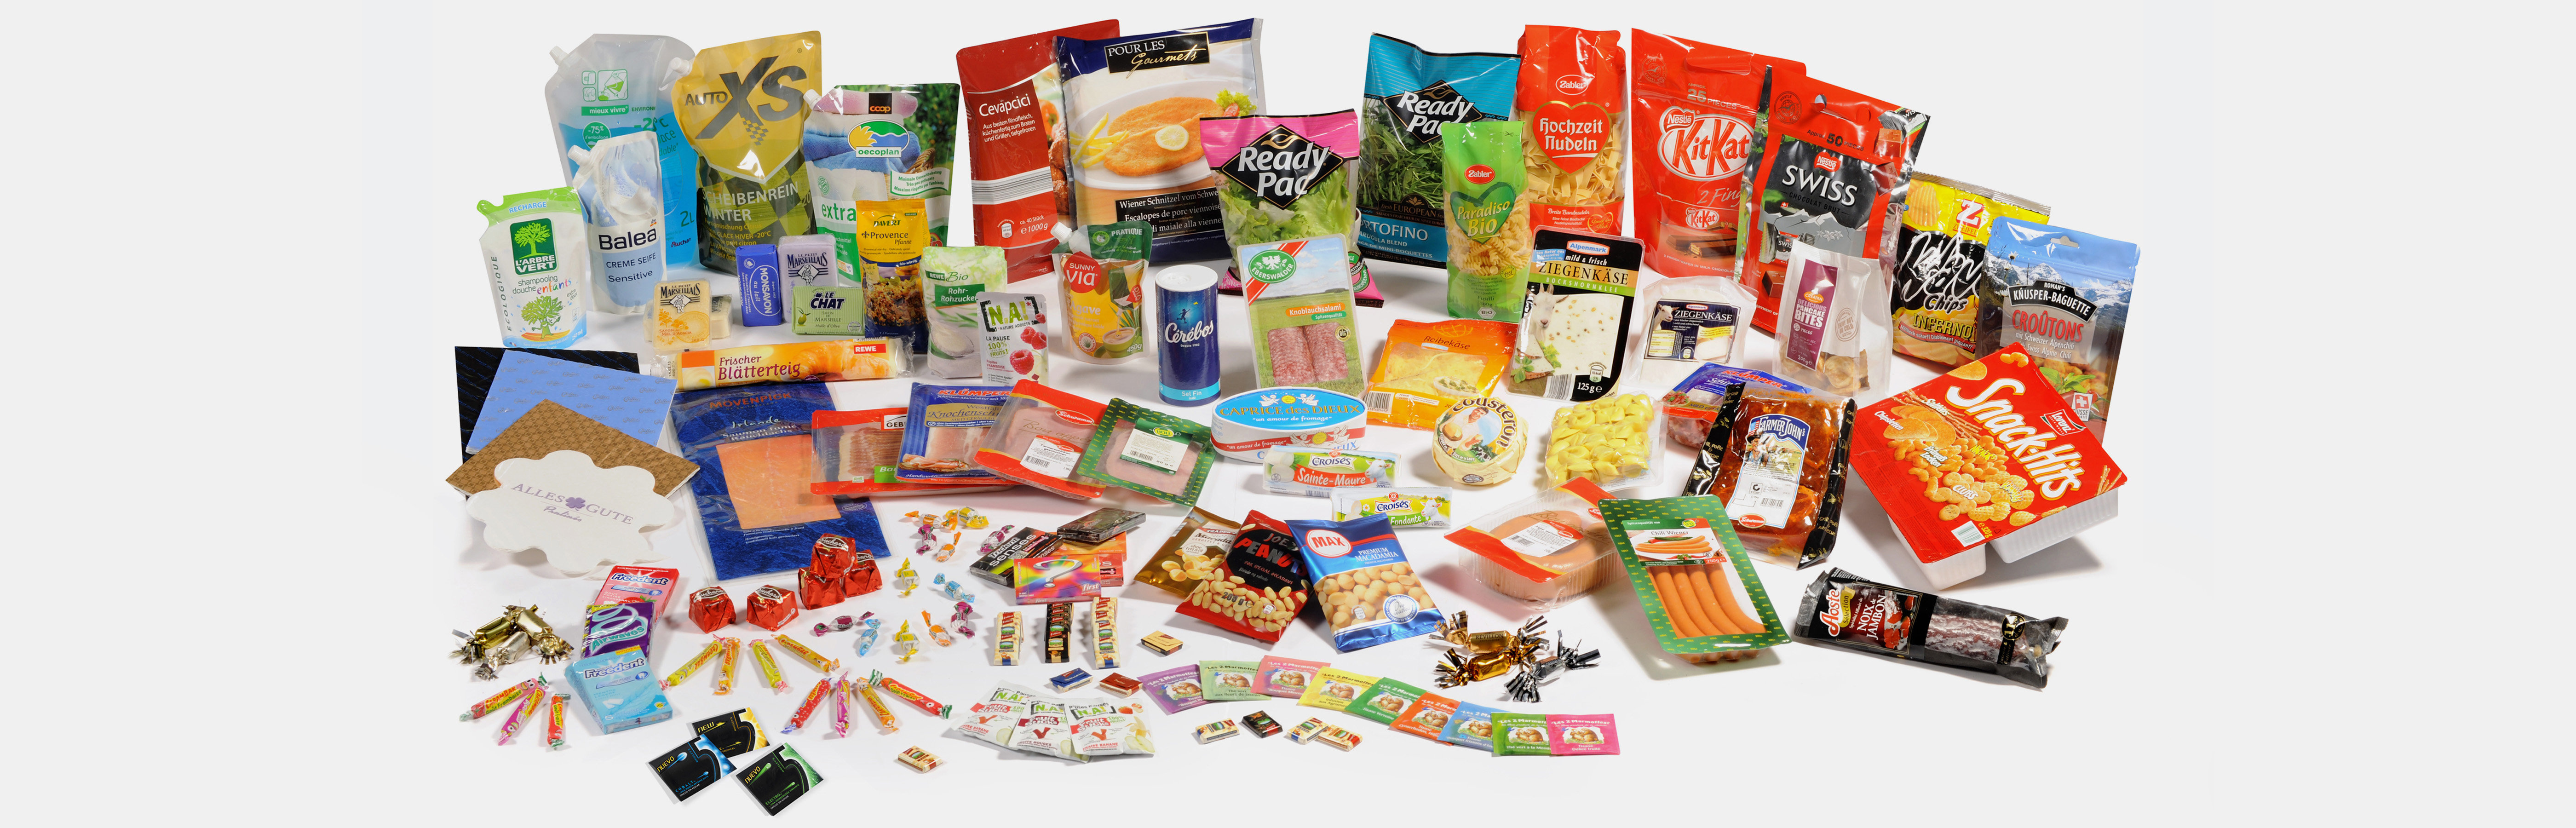 The packaging portfolio from Cellpack Packaging